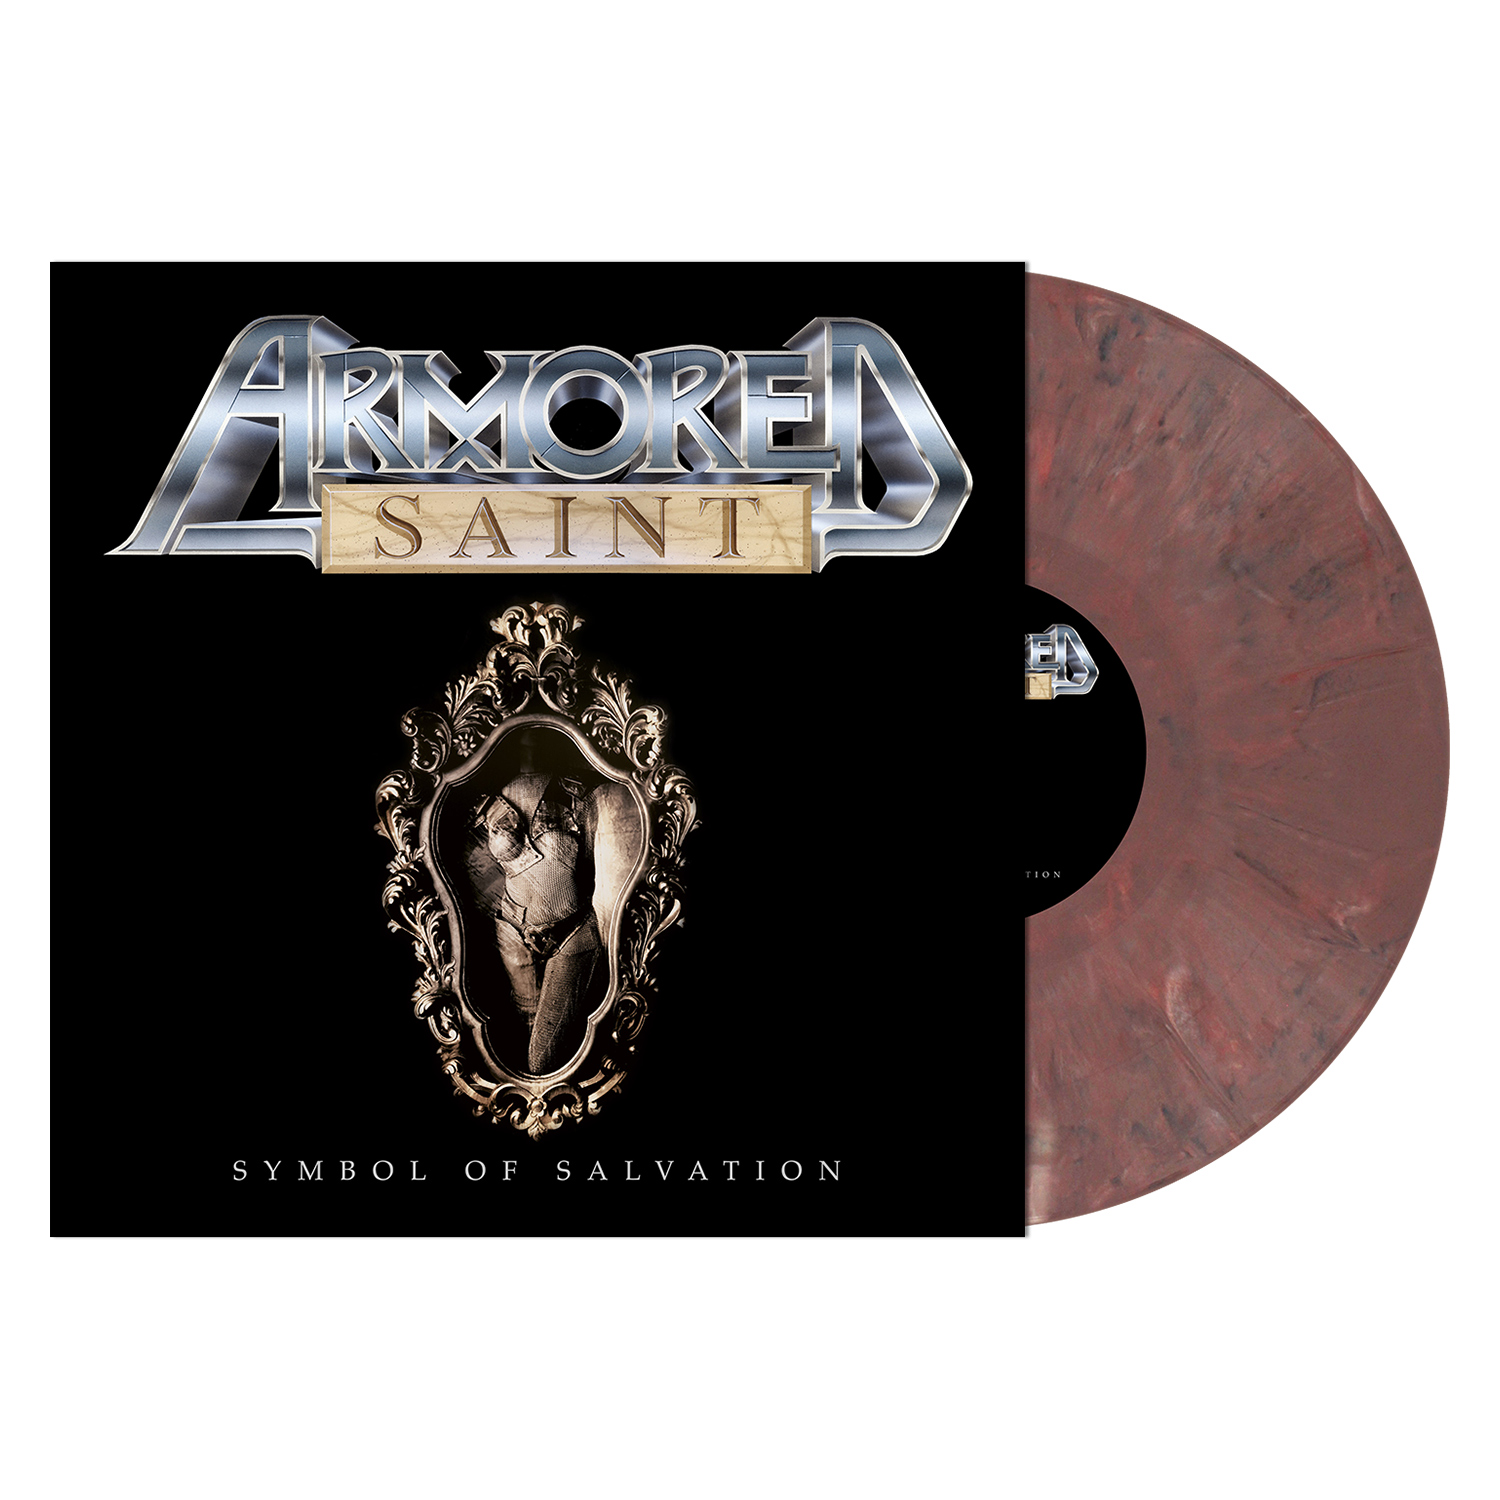 Symbol of Salvation - Deluxe Bundle - Violet